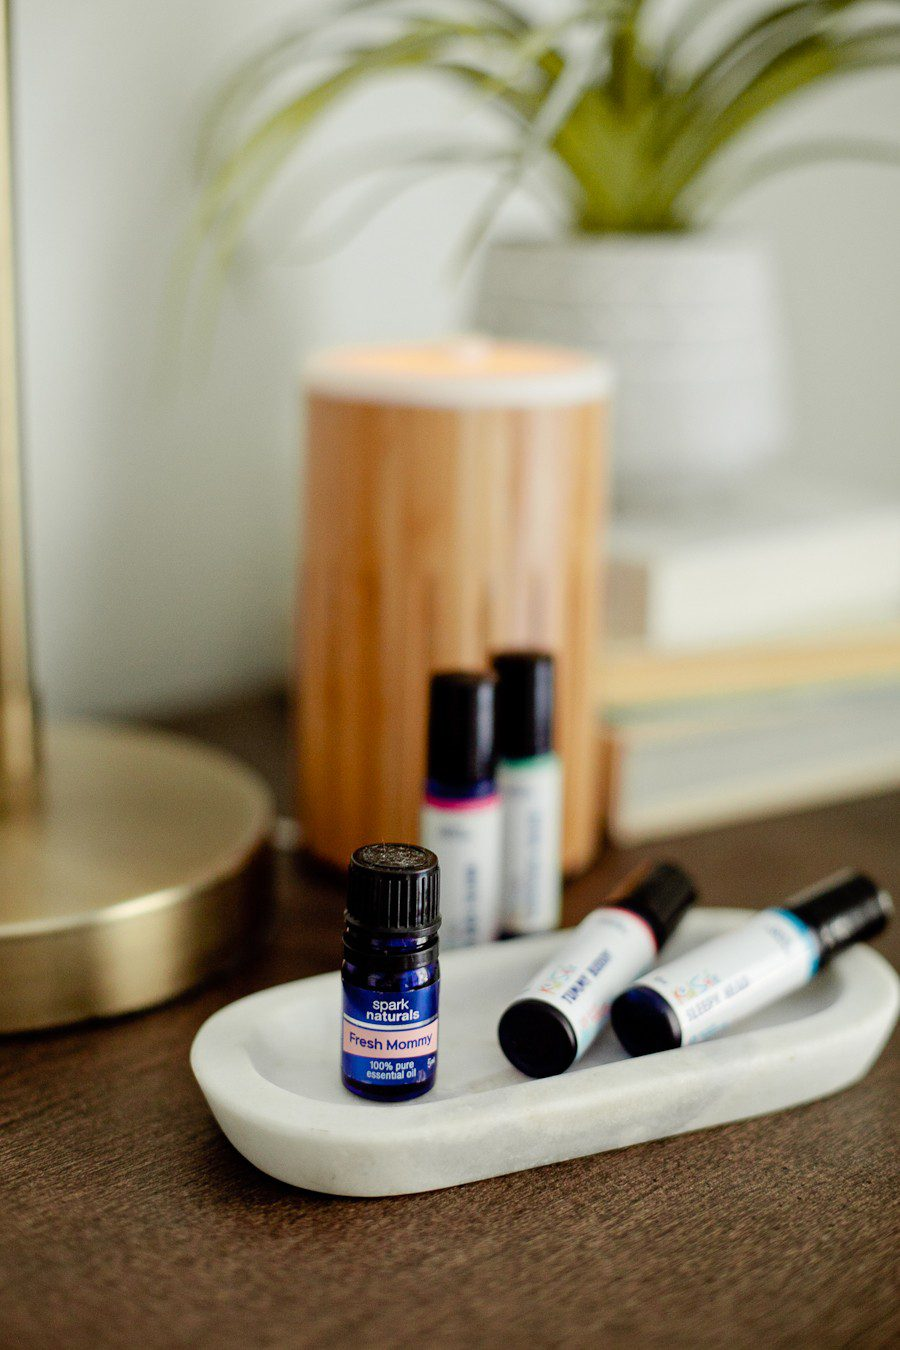 Essential Oils Not Safe for Kids and Options Every Mom Needs to Know by mom and lifestyle blogger Tabitha Blue of Fresh Mommy Blog